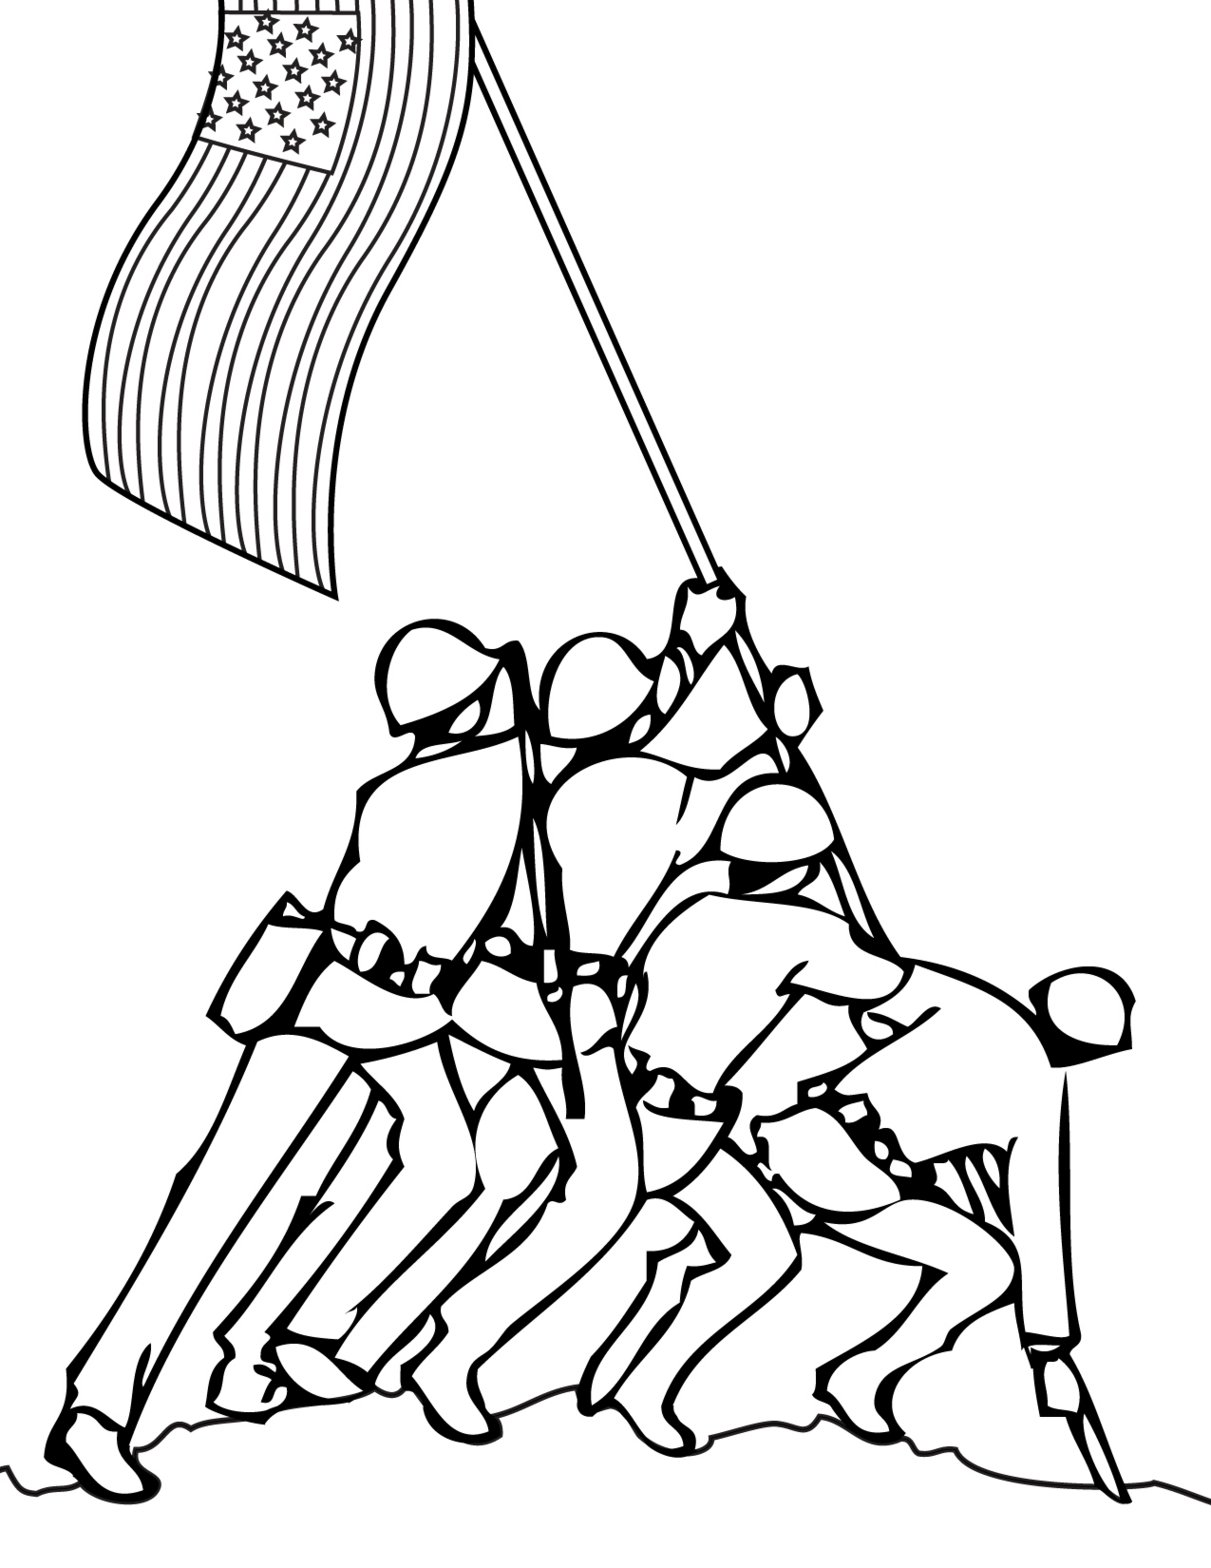 Soldiers putting flag up drawing clipart